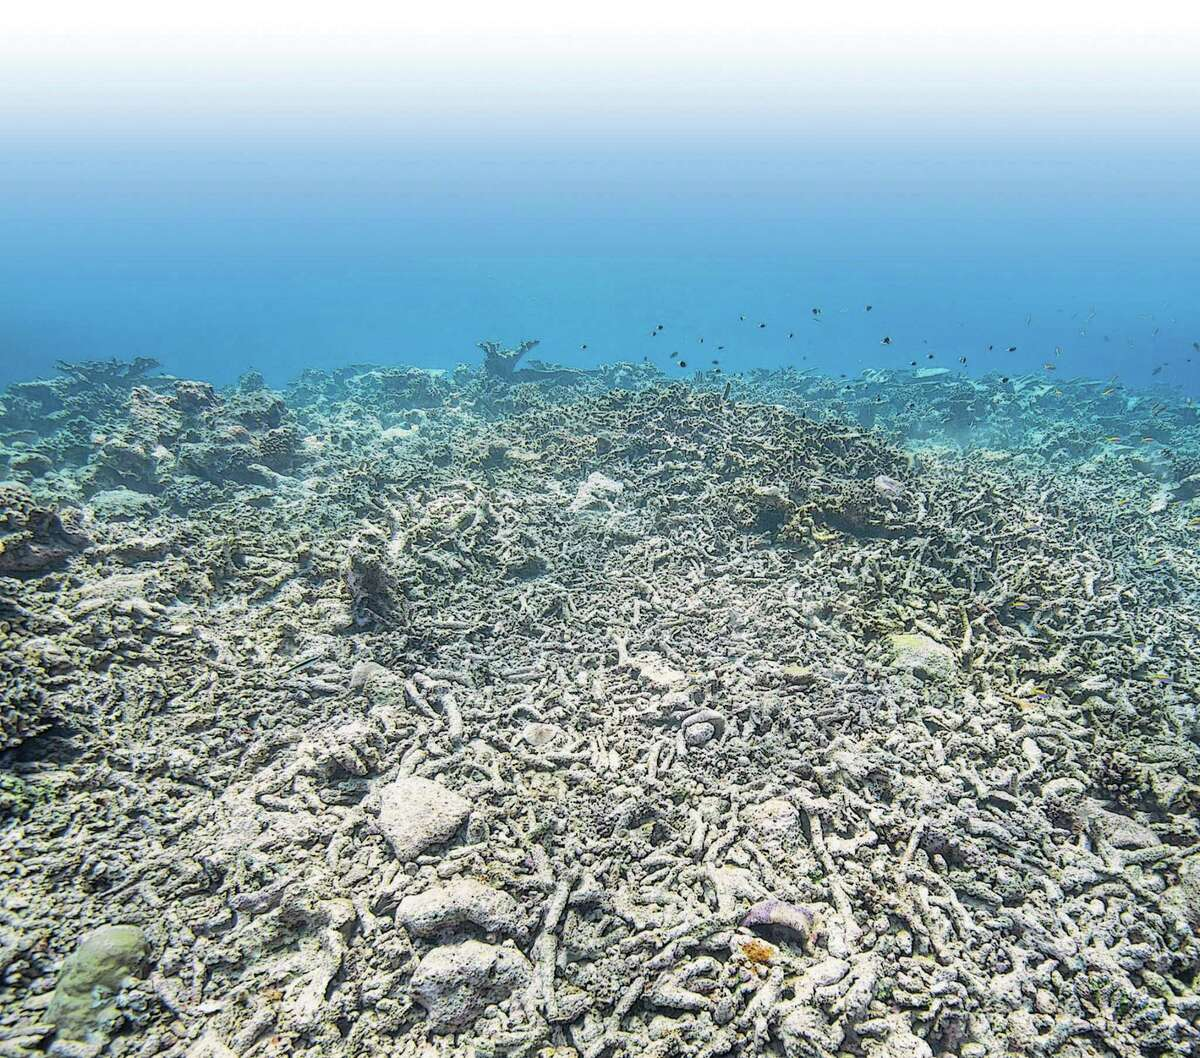 Dead coral reefs in shallow water which were killed during the mass coral bleaching event, which is relating to climate change. Bleaching of coral colonies is caused by warming of sea temperature and most likely combined with other environmental stresses causing coral to expel symbiotic zooxanthellae algae, which could even lead to coral death.